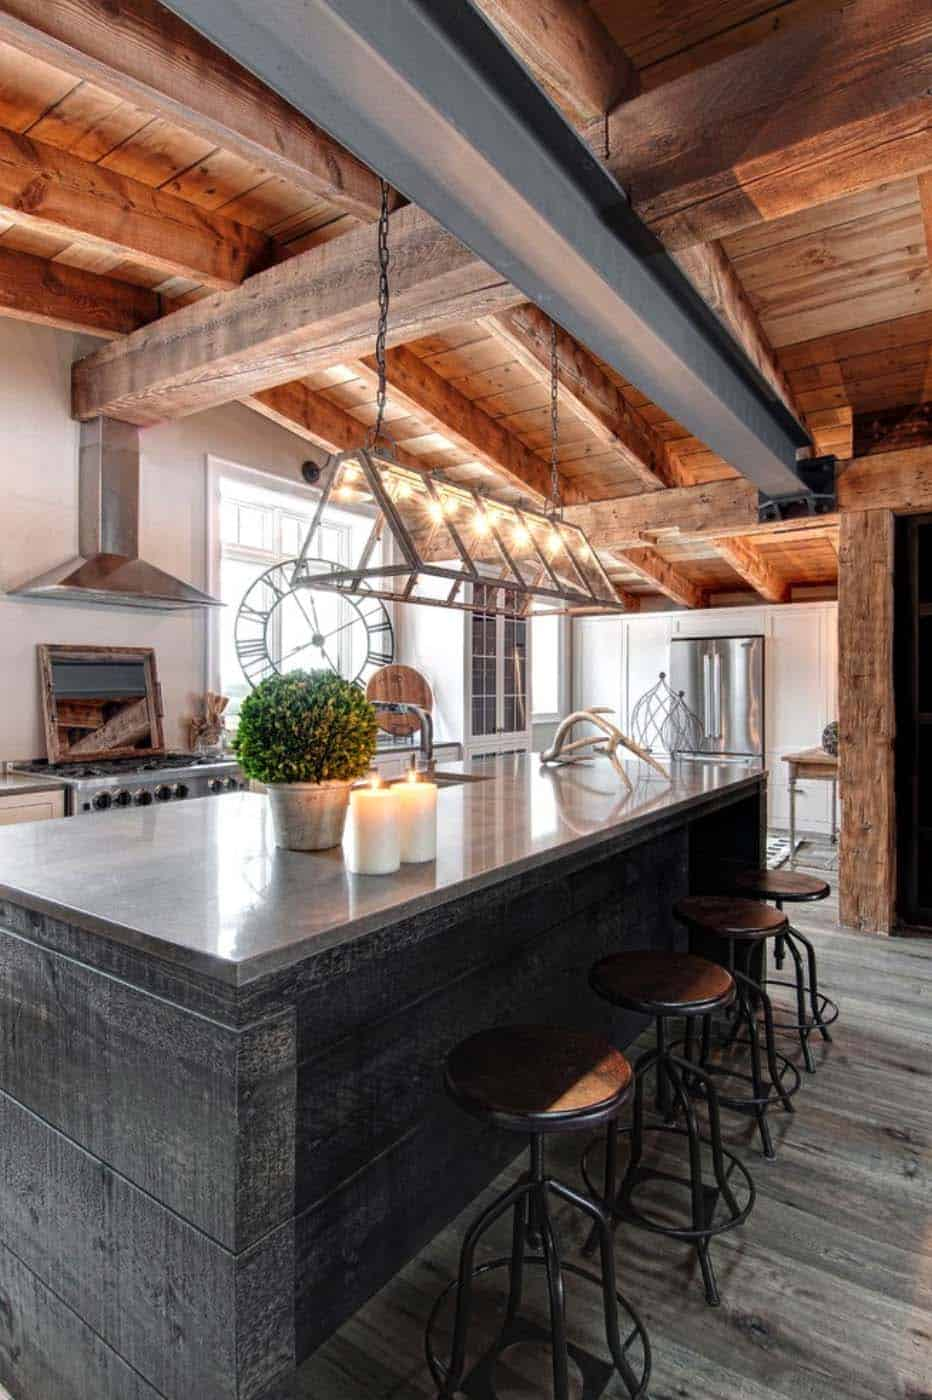 Rustic-Modern-Design-Timberworx Custom Homes-05-1 Kindesign